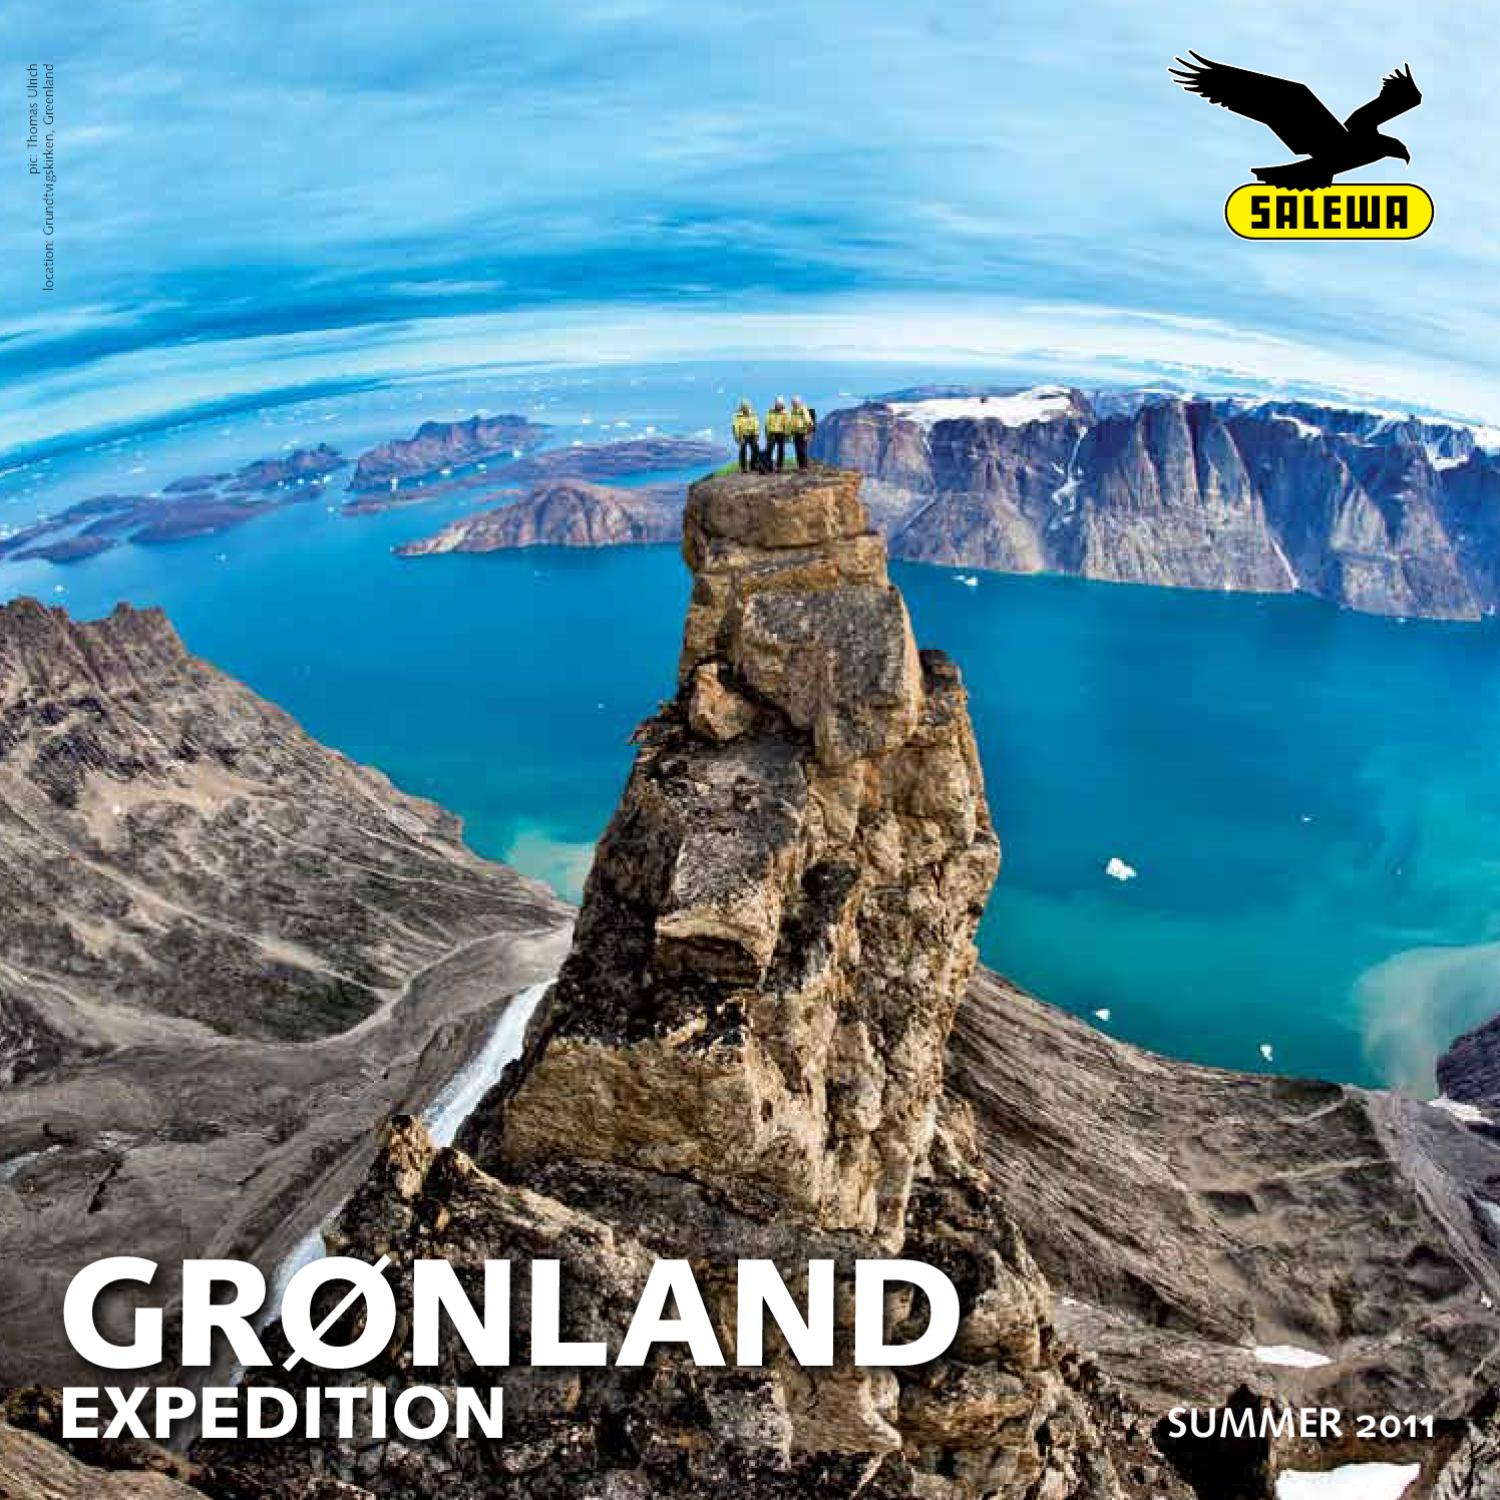 GRONLAND EXPEDITION SALEWA Summer 2011 EN by